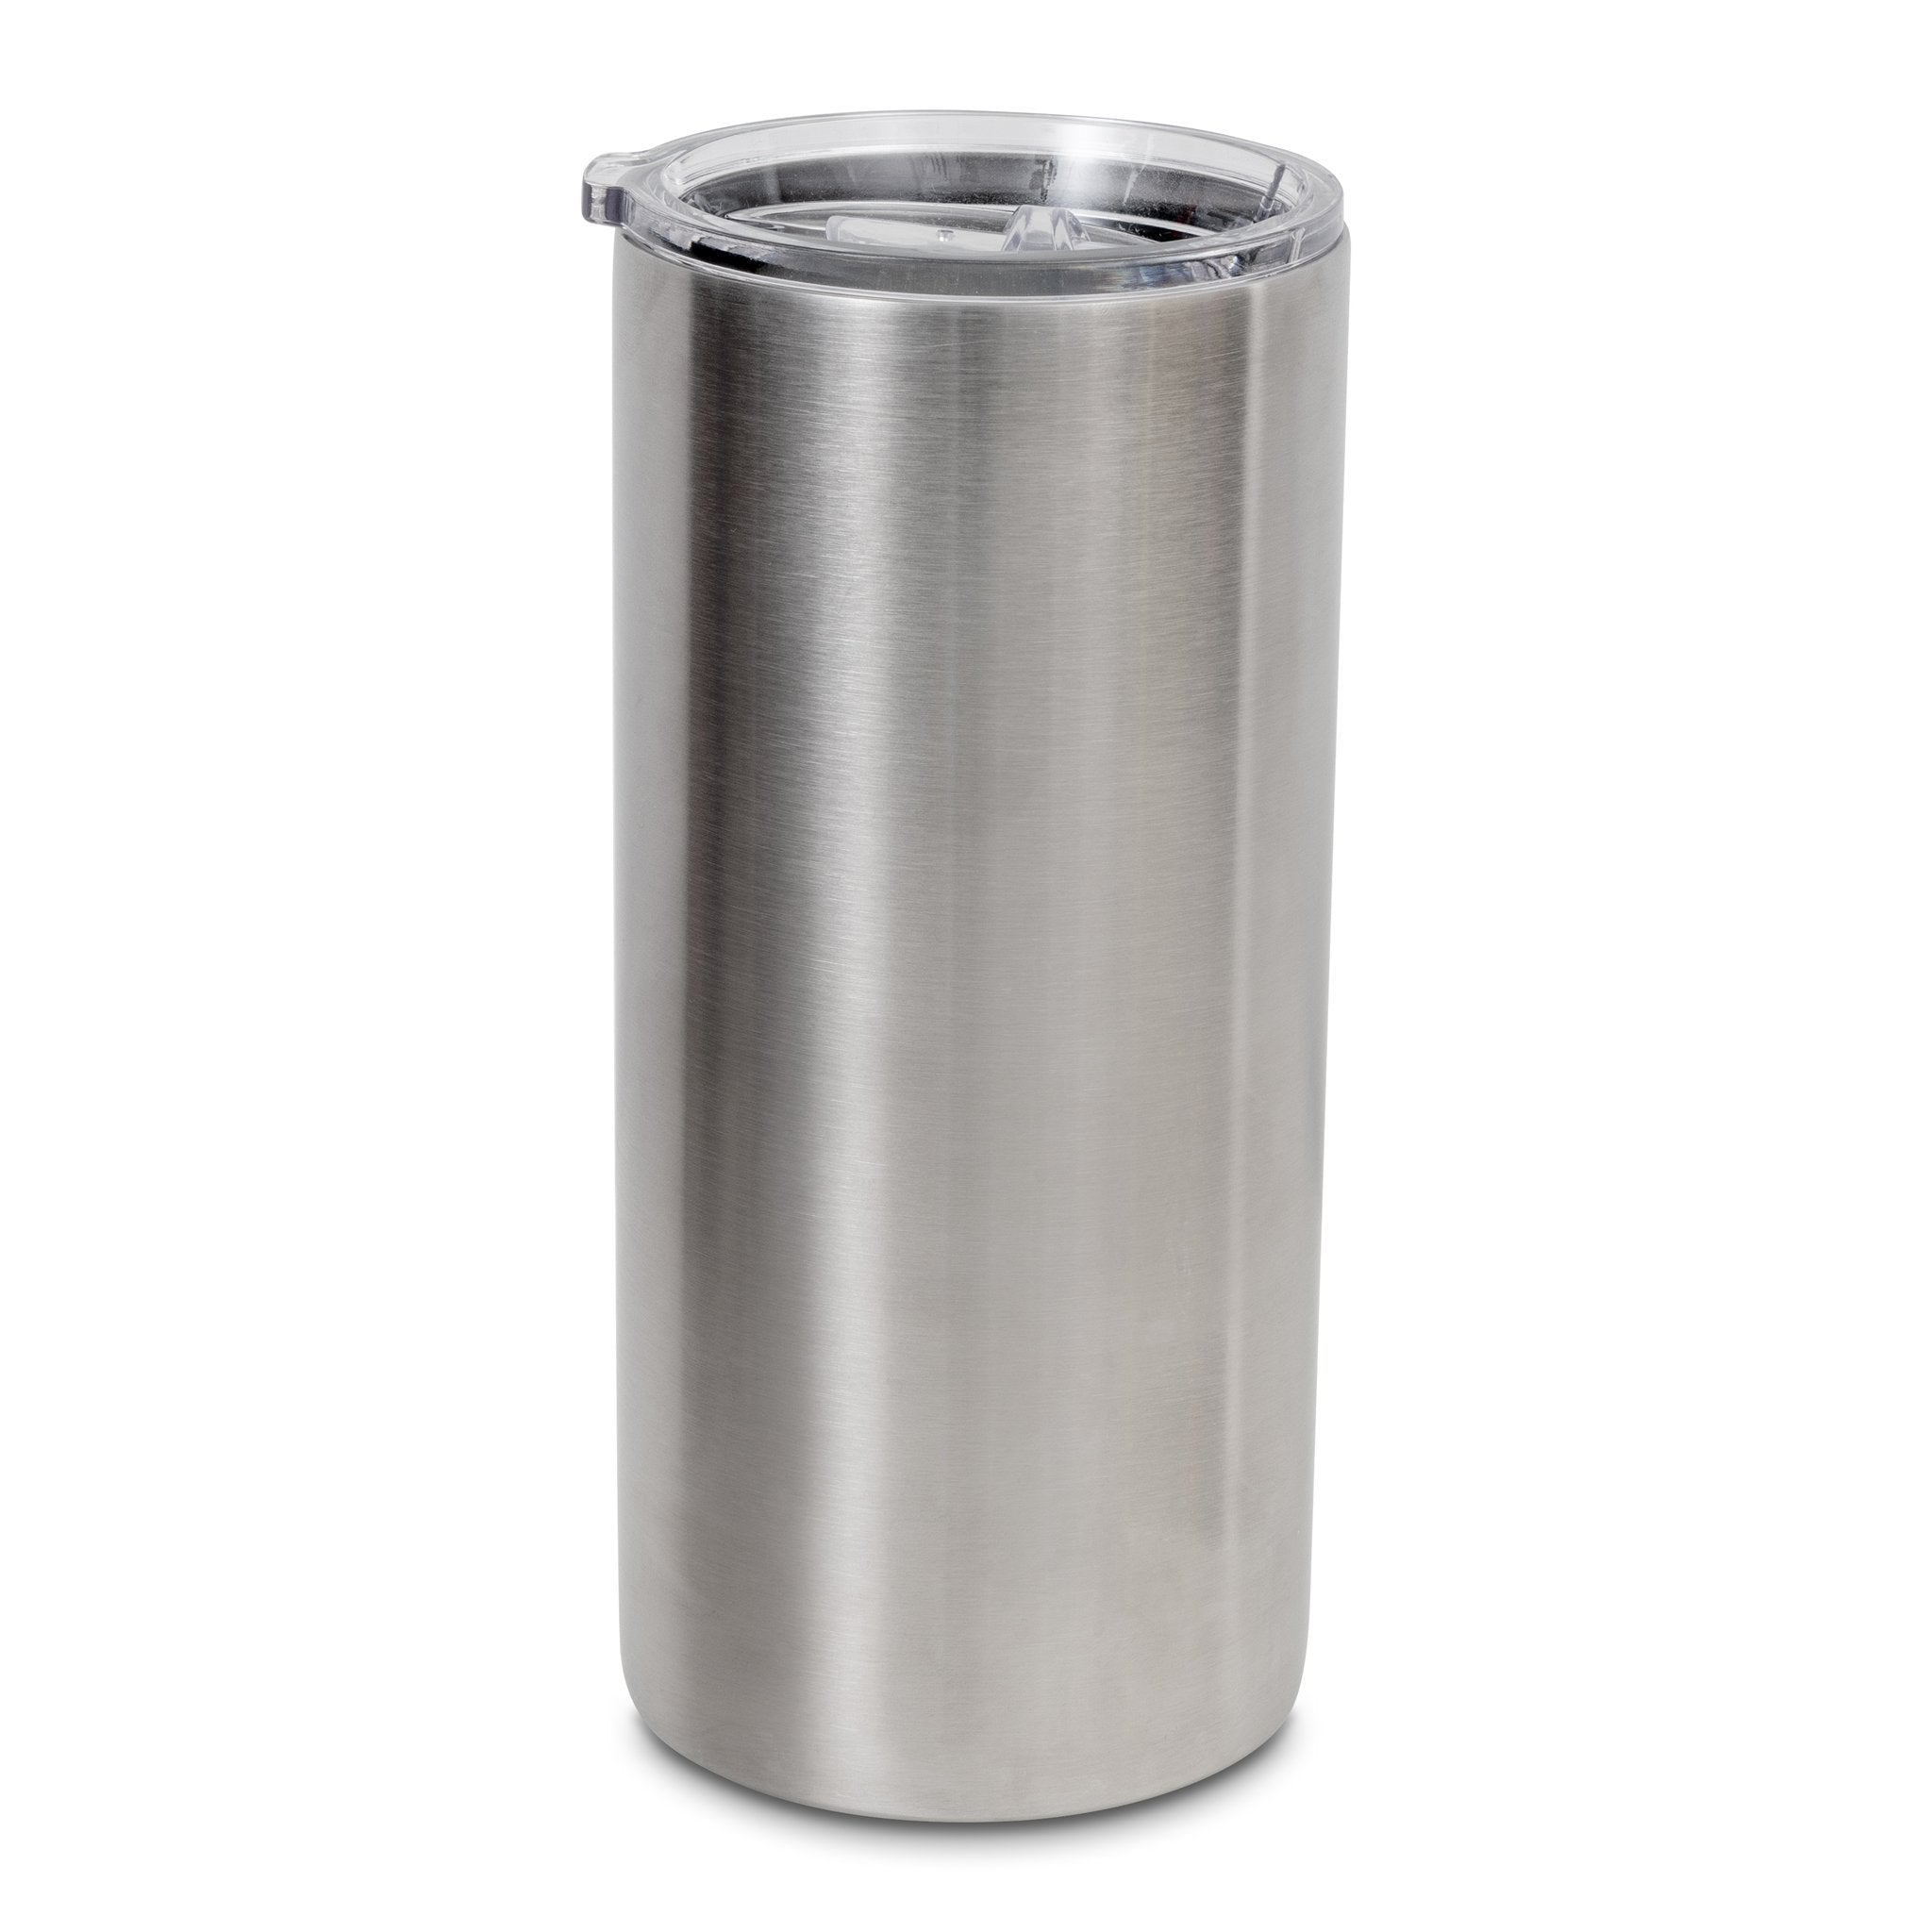 insulated tumbler - stainless steel 20oz